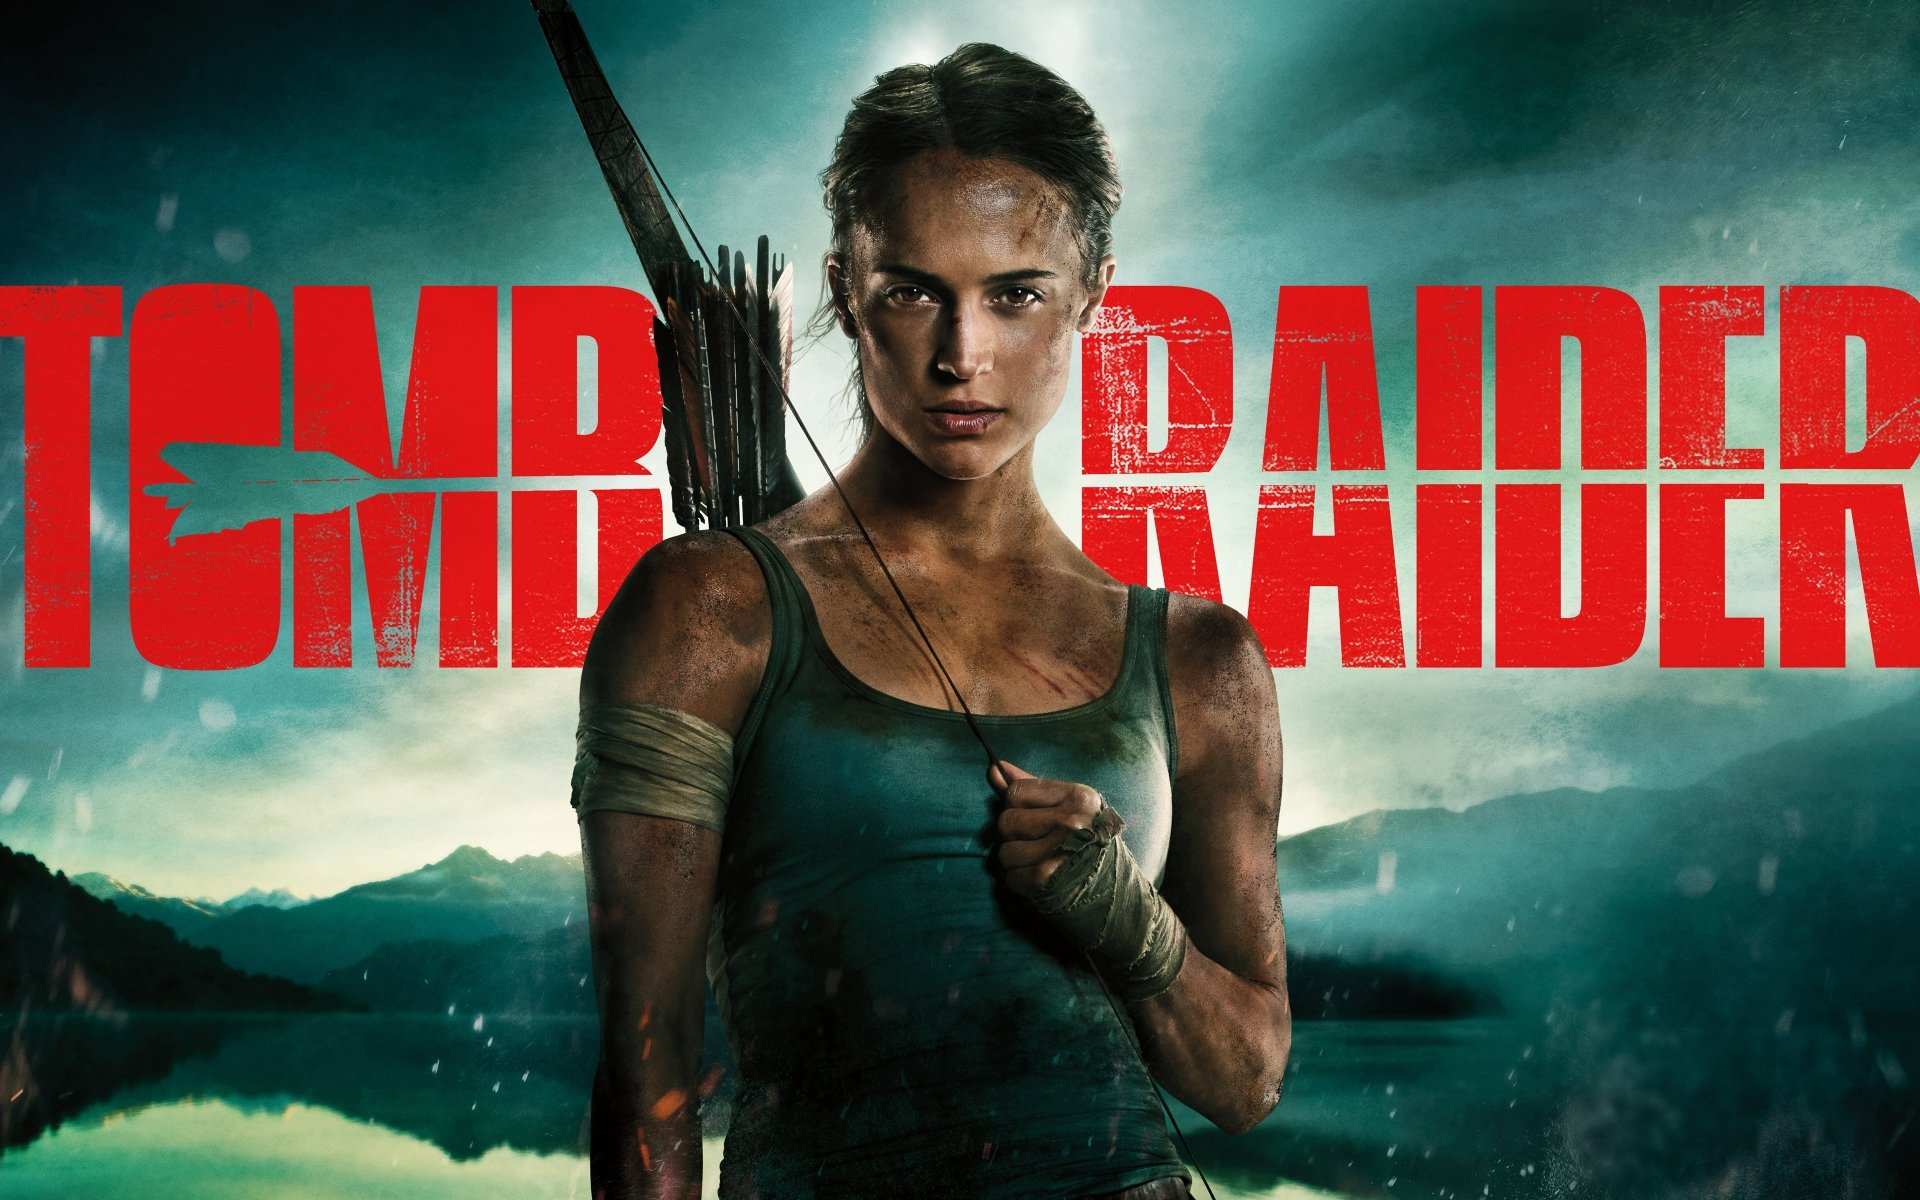 2018 Movie Posters: Tomb Raider 2018 Movie Poster Background